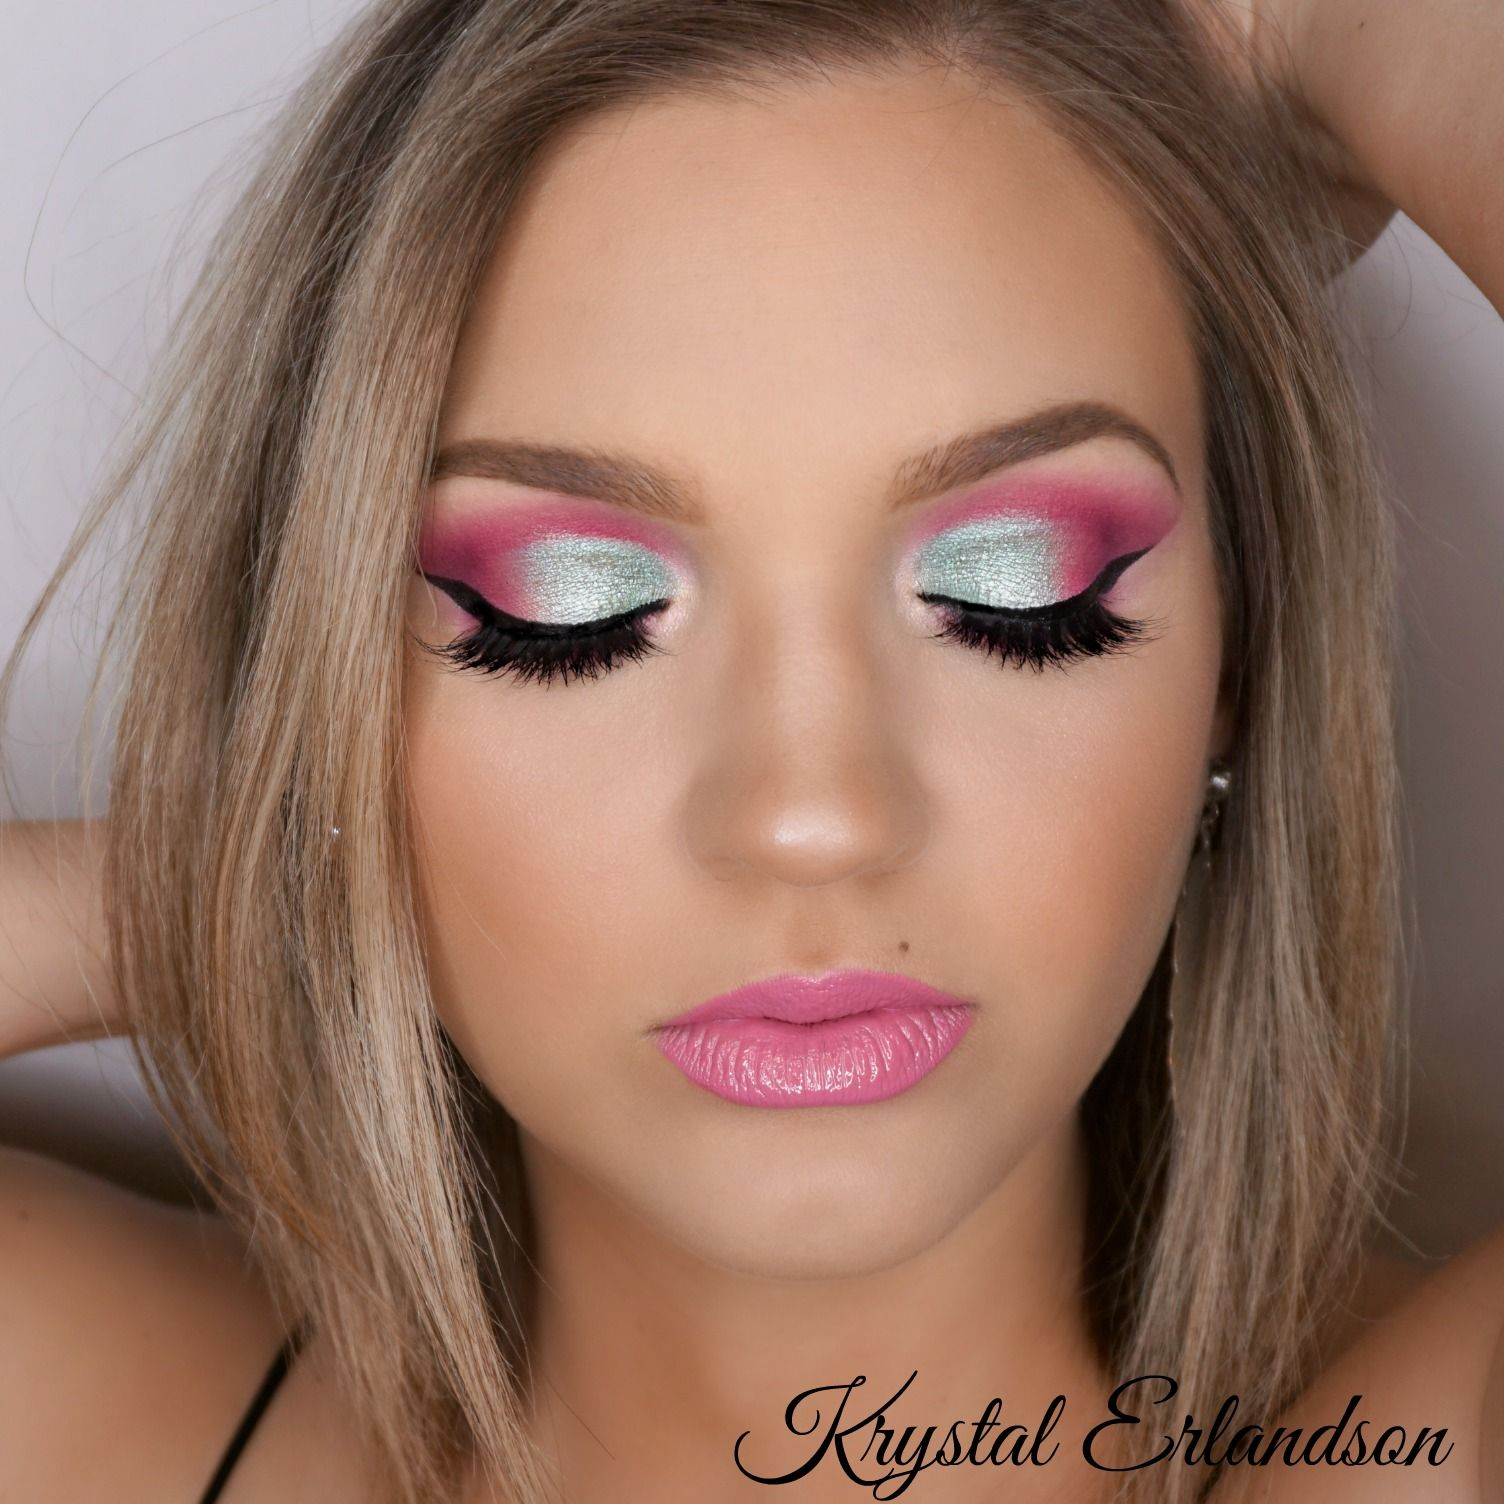 Pink/Teal Makeup Tutorial Makeup Geek Teal makeup